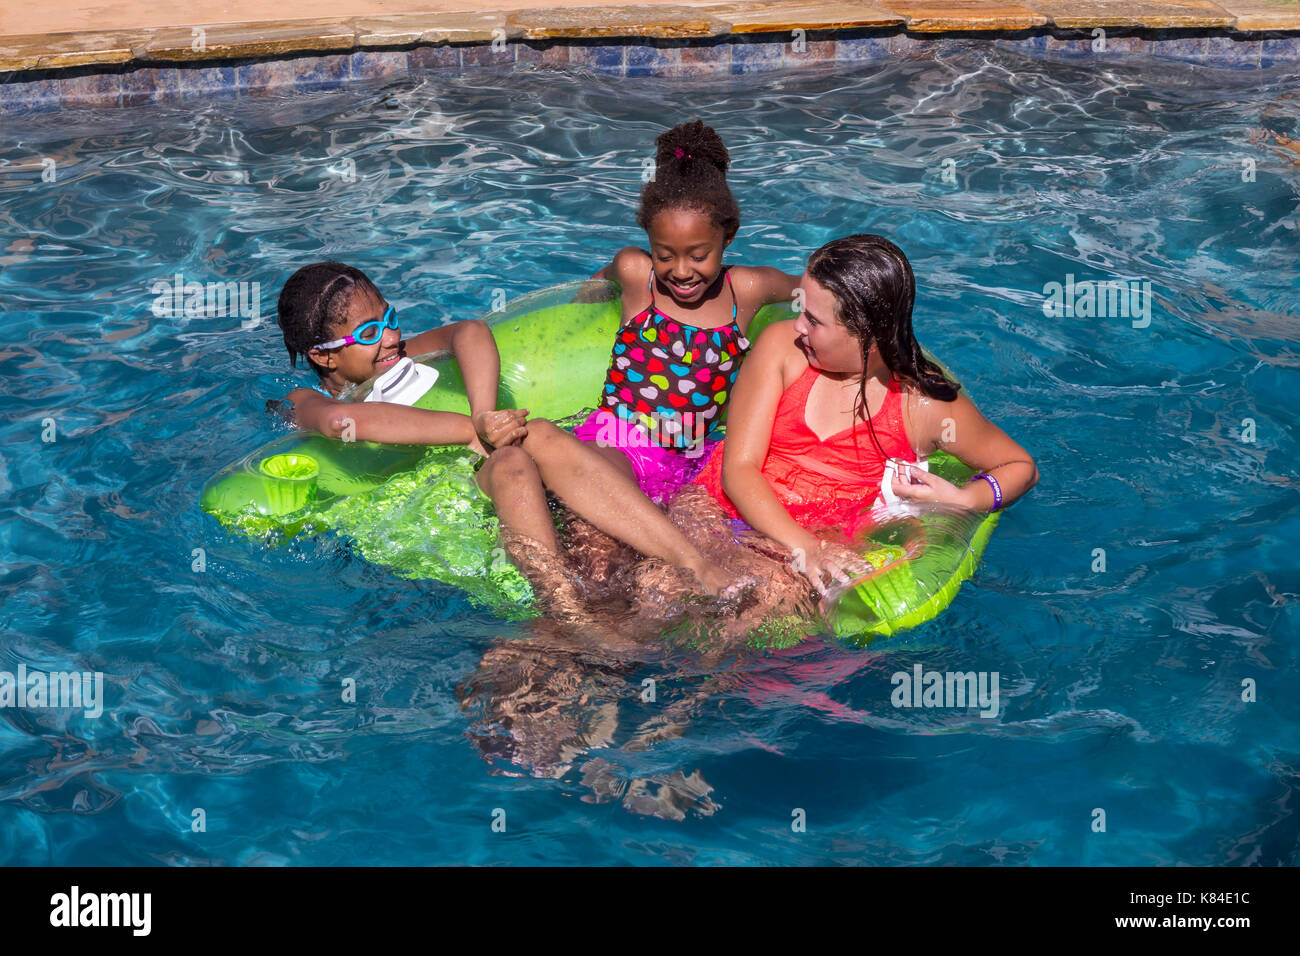 girls, children, swimmers, swimming, swimming pool, freshwater swimming pool, pool party, Castro Valley, Alameda County, California, United States - Stock Image